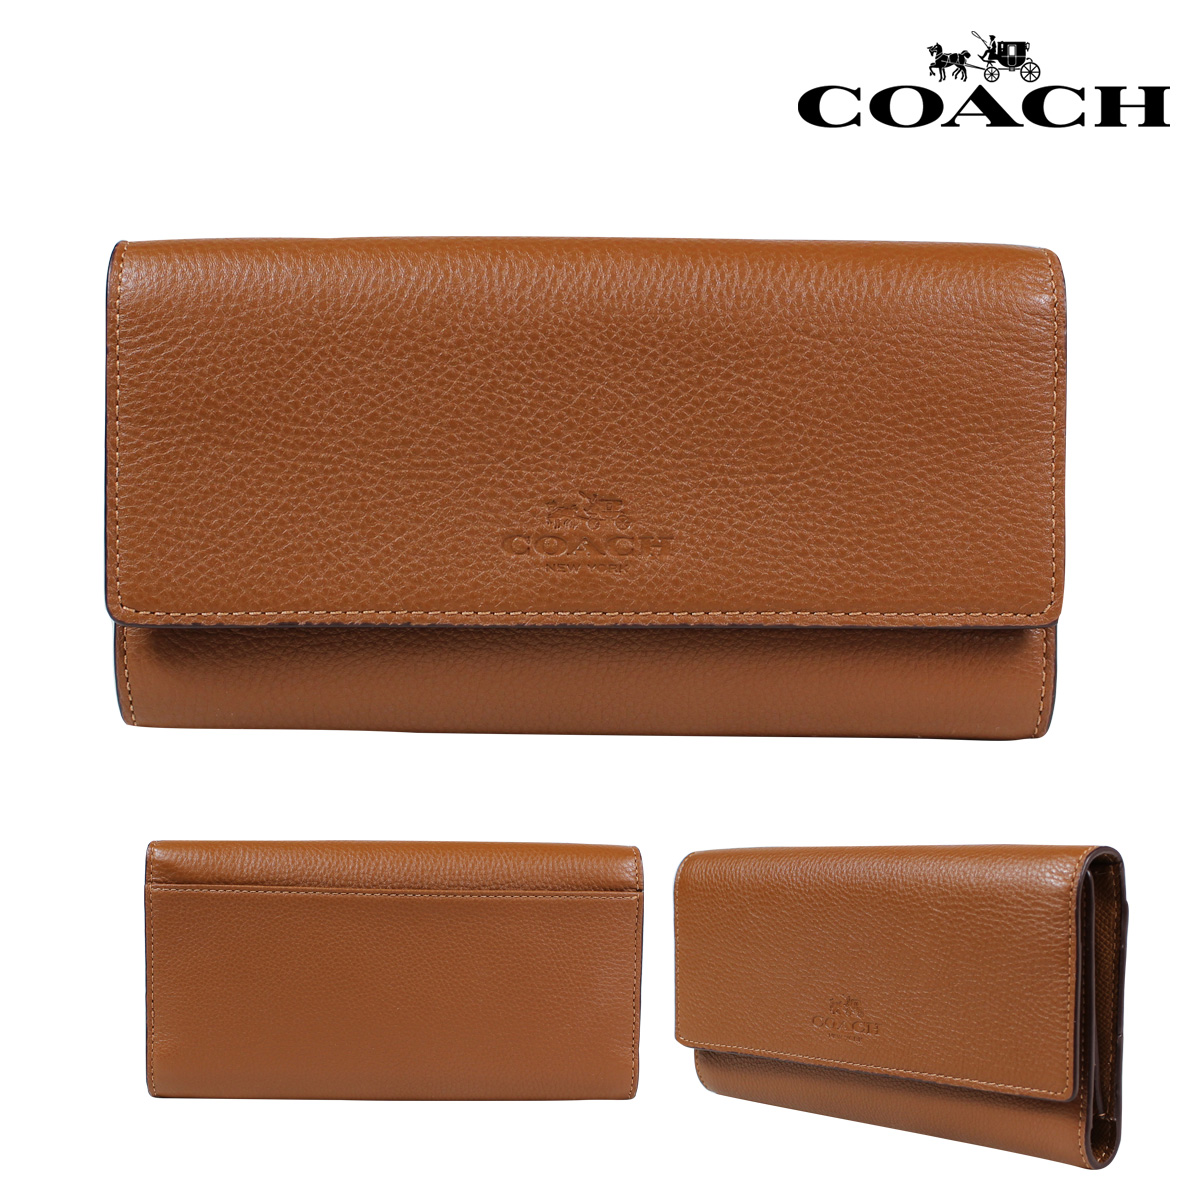 outlet store 57004 d56c4 COACH coach wallets wallet card case F53708 saddle ladies